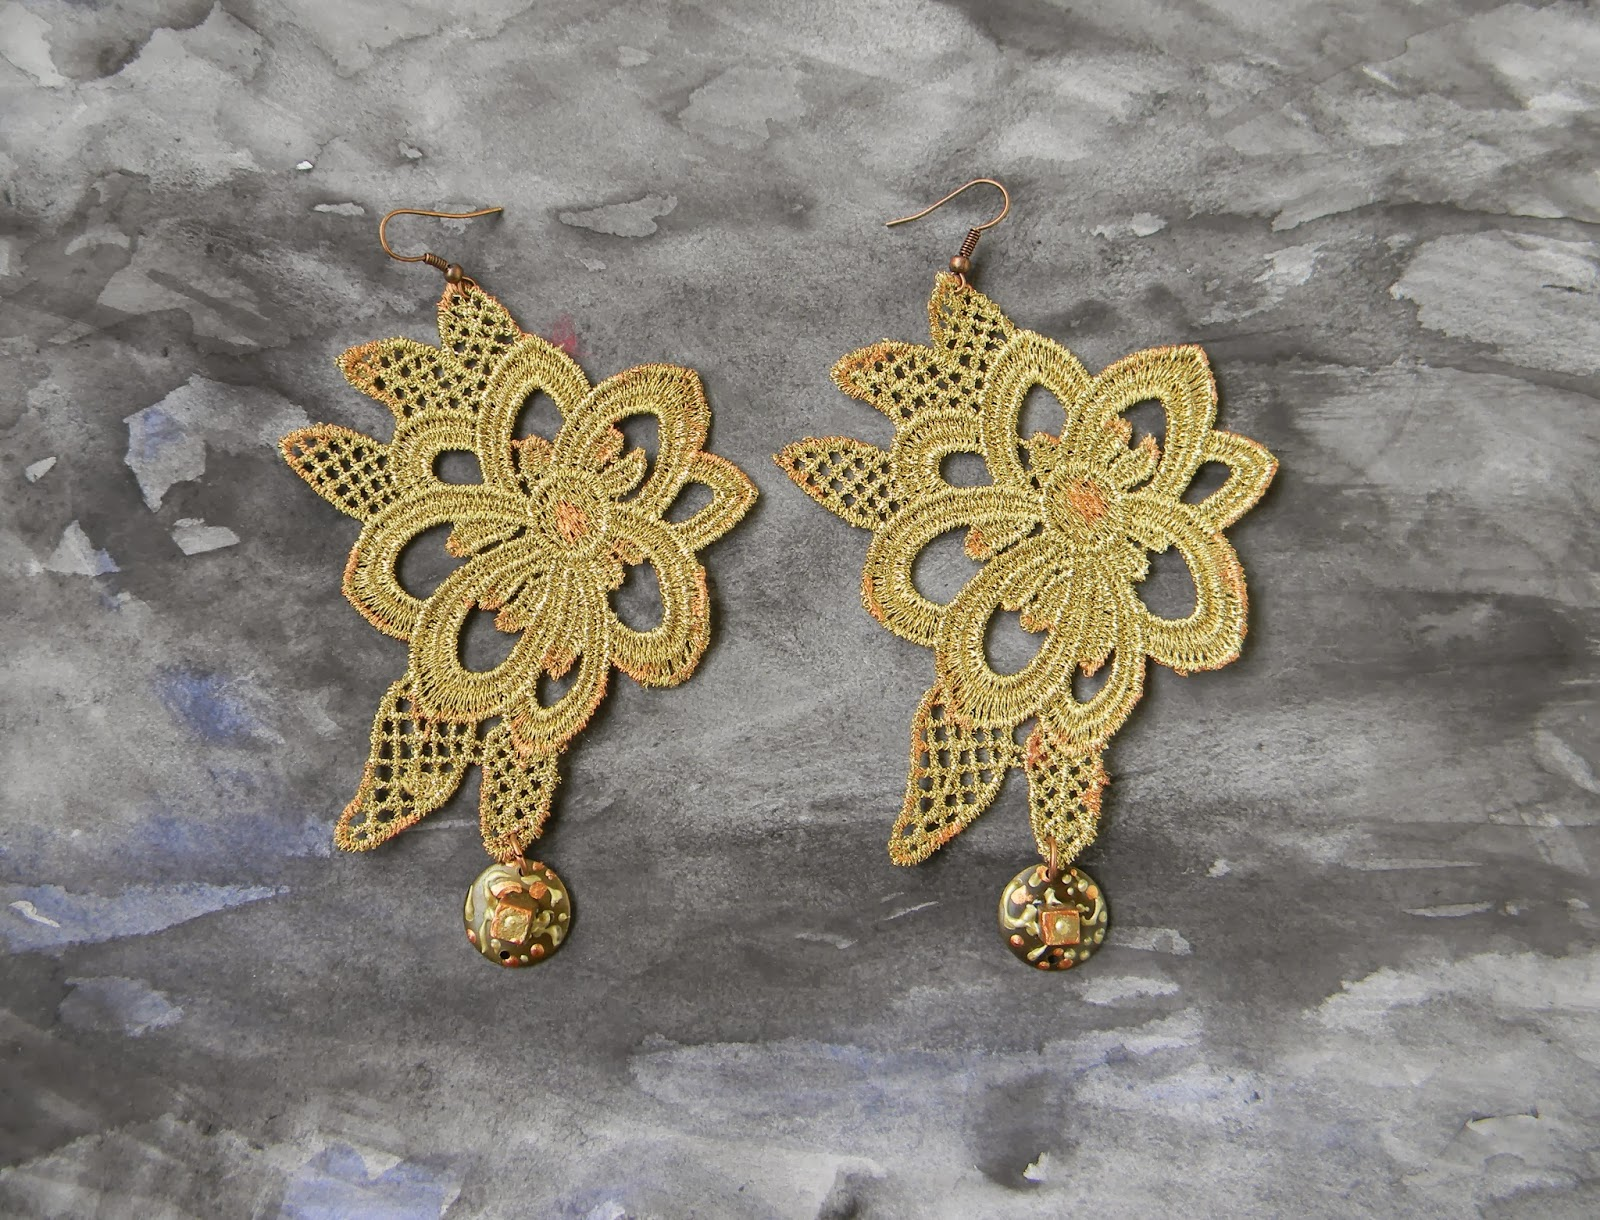 Lace Satement Earrings Golden Metallic Earrings Floral Embroidery Jewelry